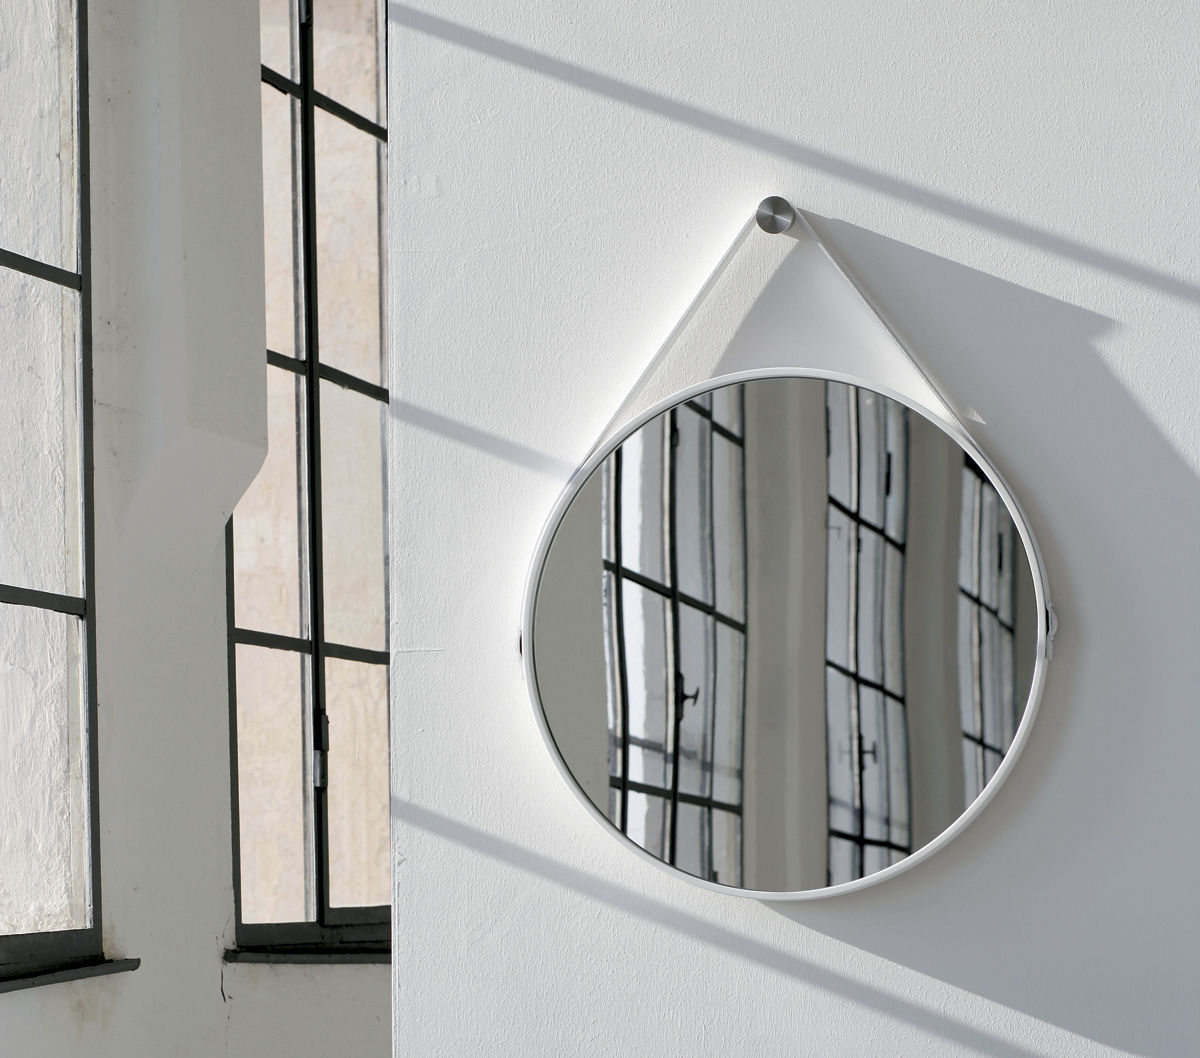 Wall Mounted Mirror Contemporary Round Leather George 24in Pertaining To Contemporary Round Mirror (View 15 of 15)